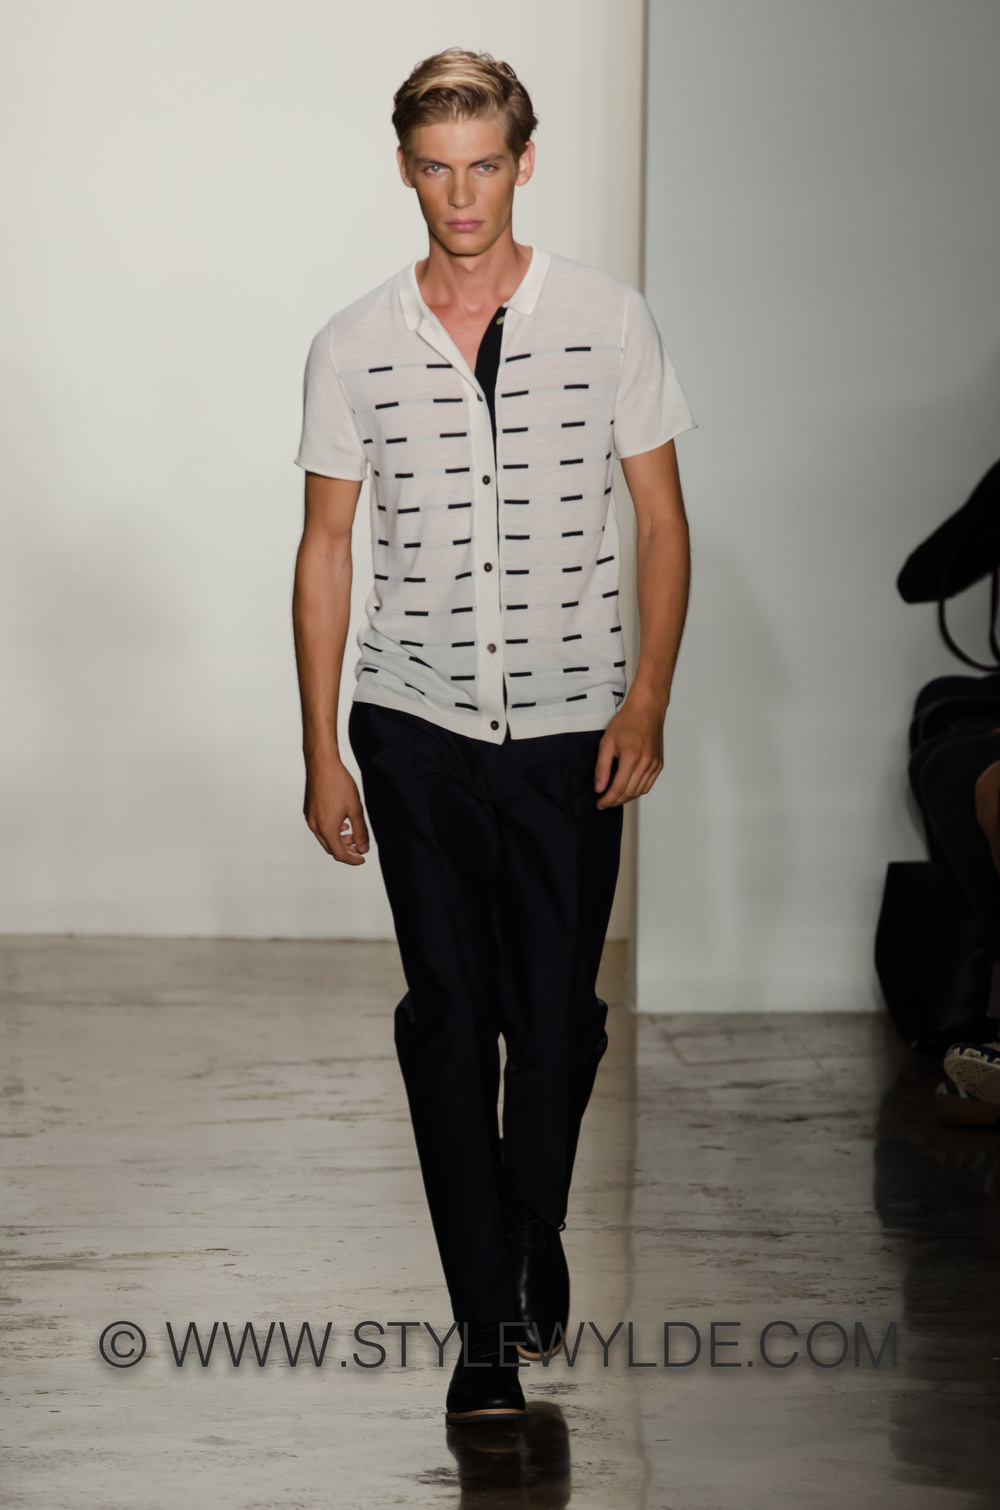 stylewylde_timo_weiland_gallery_ss2014-3.jpg